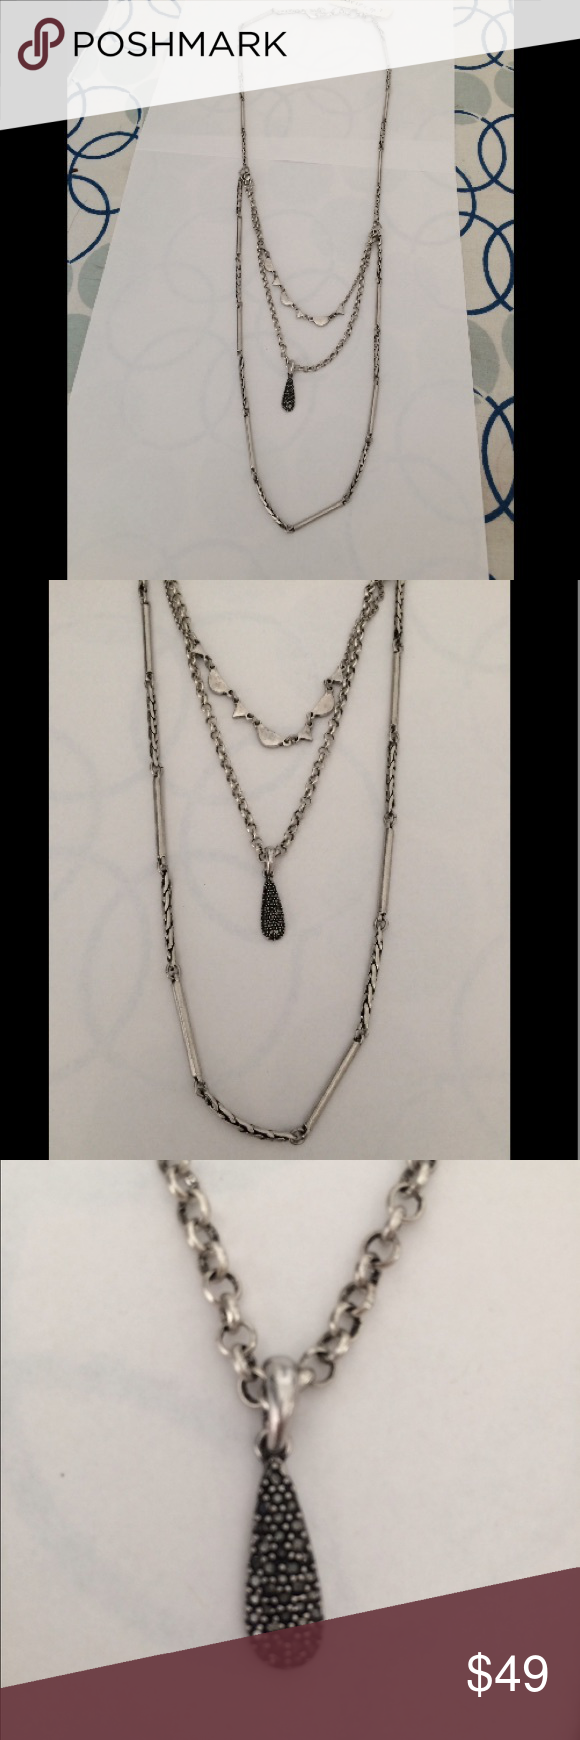 Beautiful necklace Beautiful necklace Lucky Brand Jewelry Necklaces